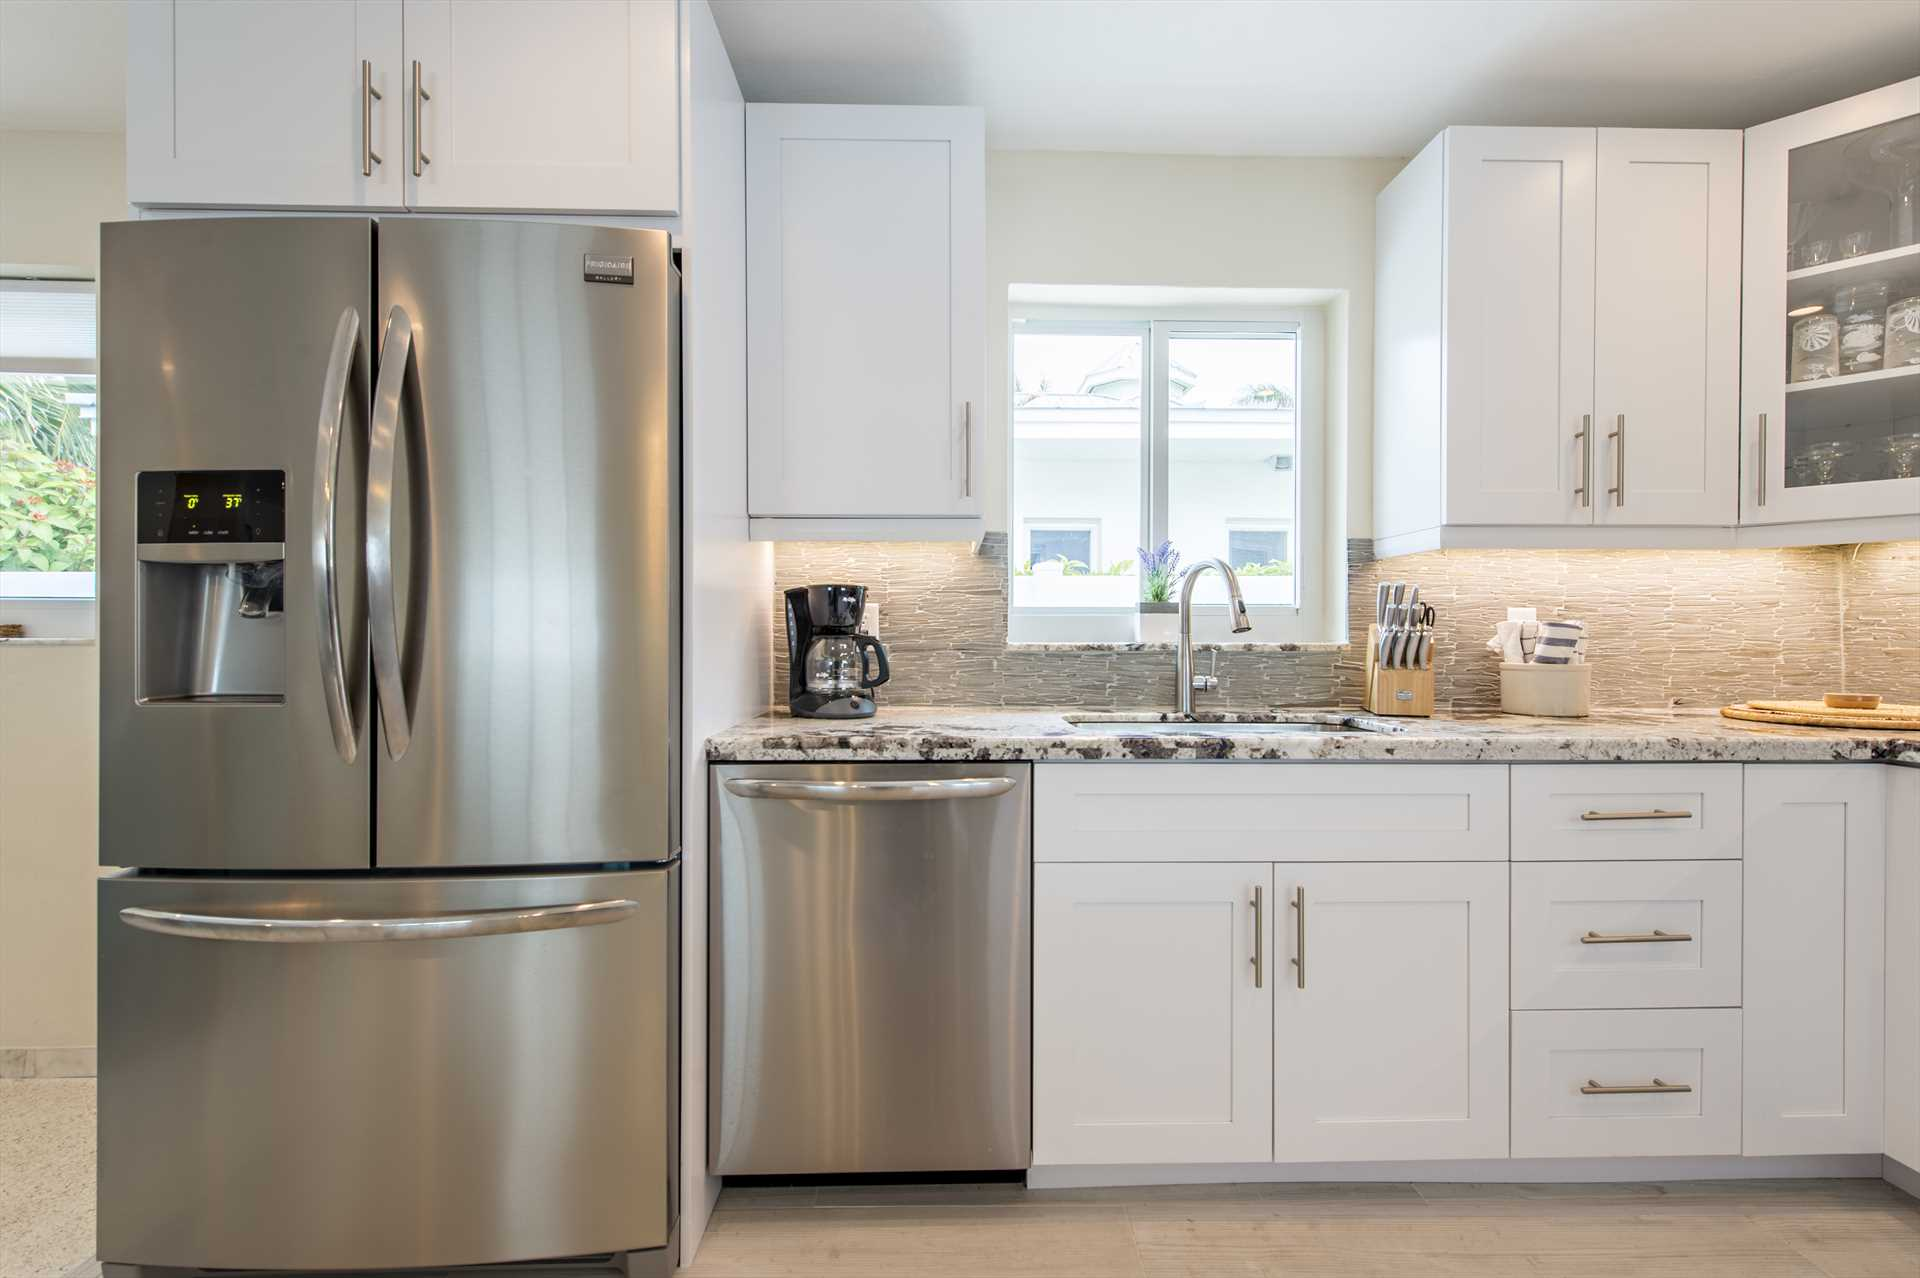 Fully equipped kitchen has all new stainless appliances and